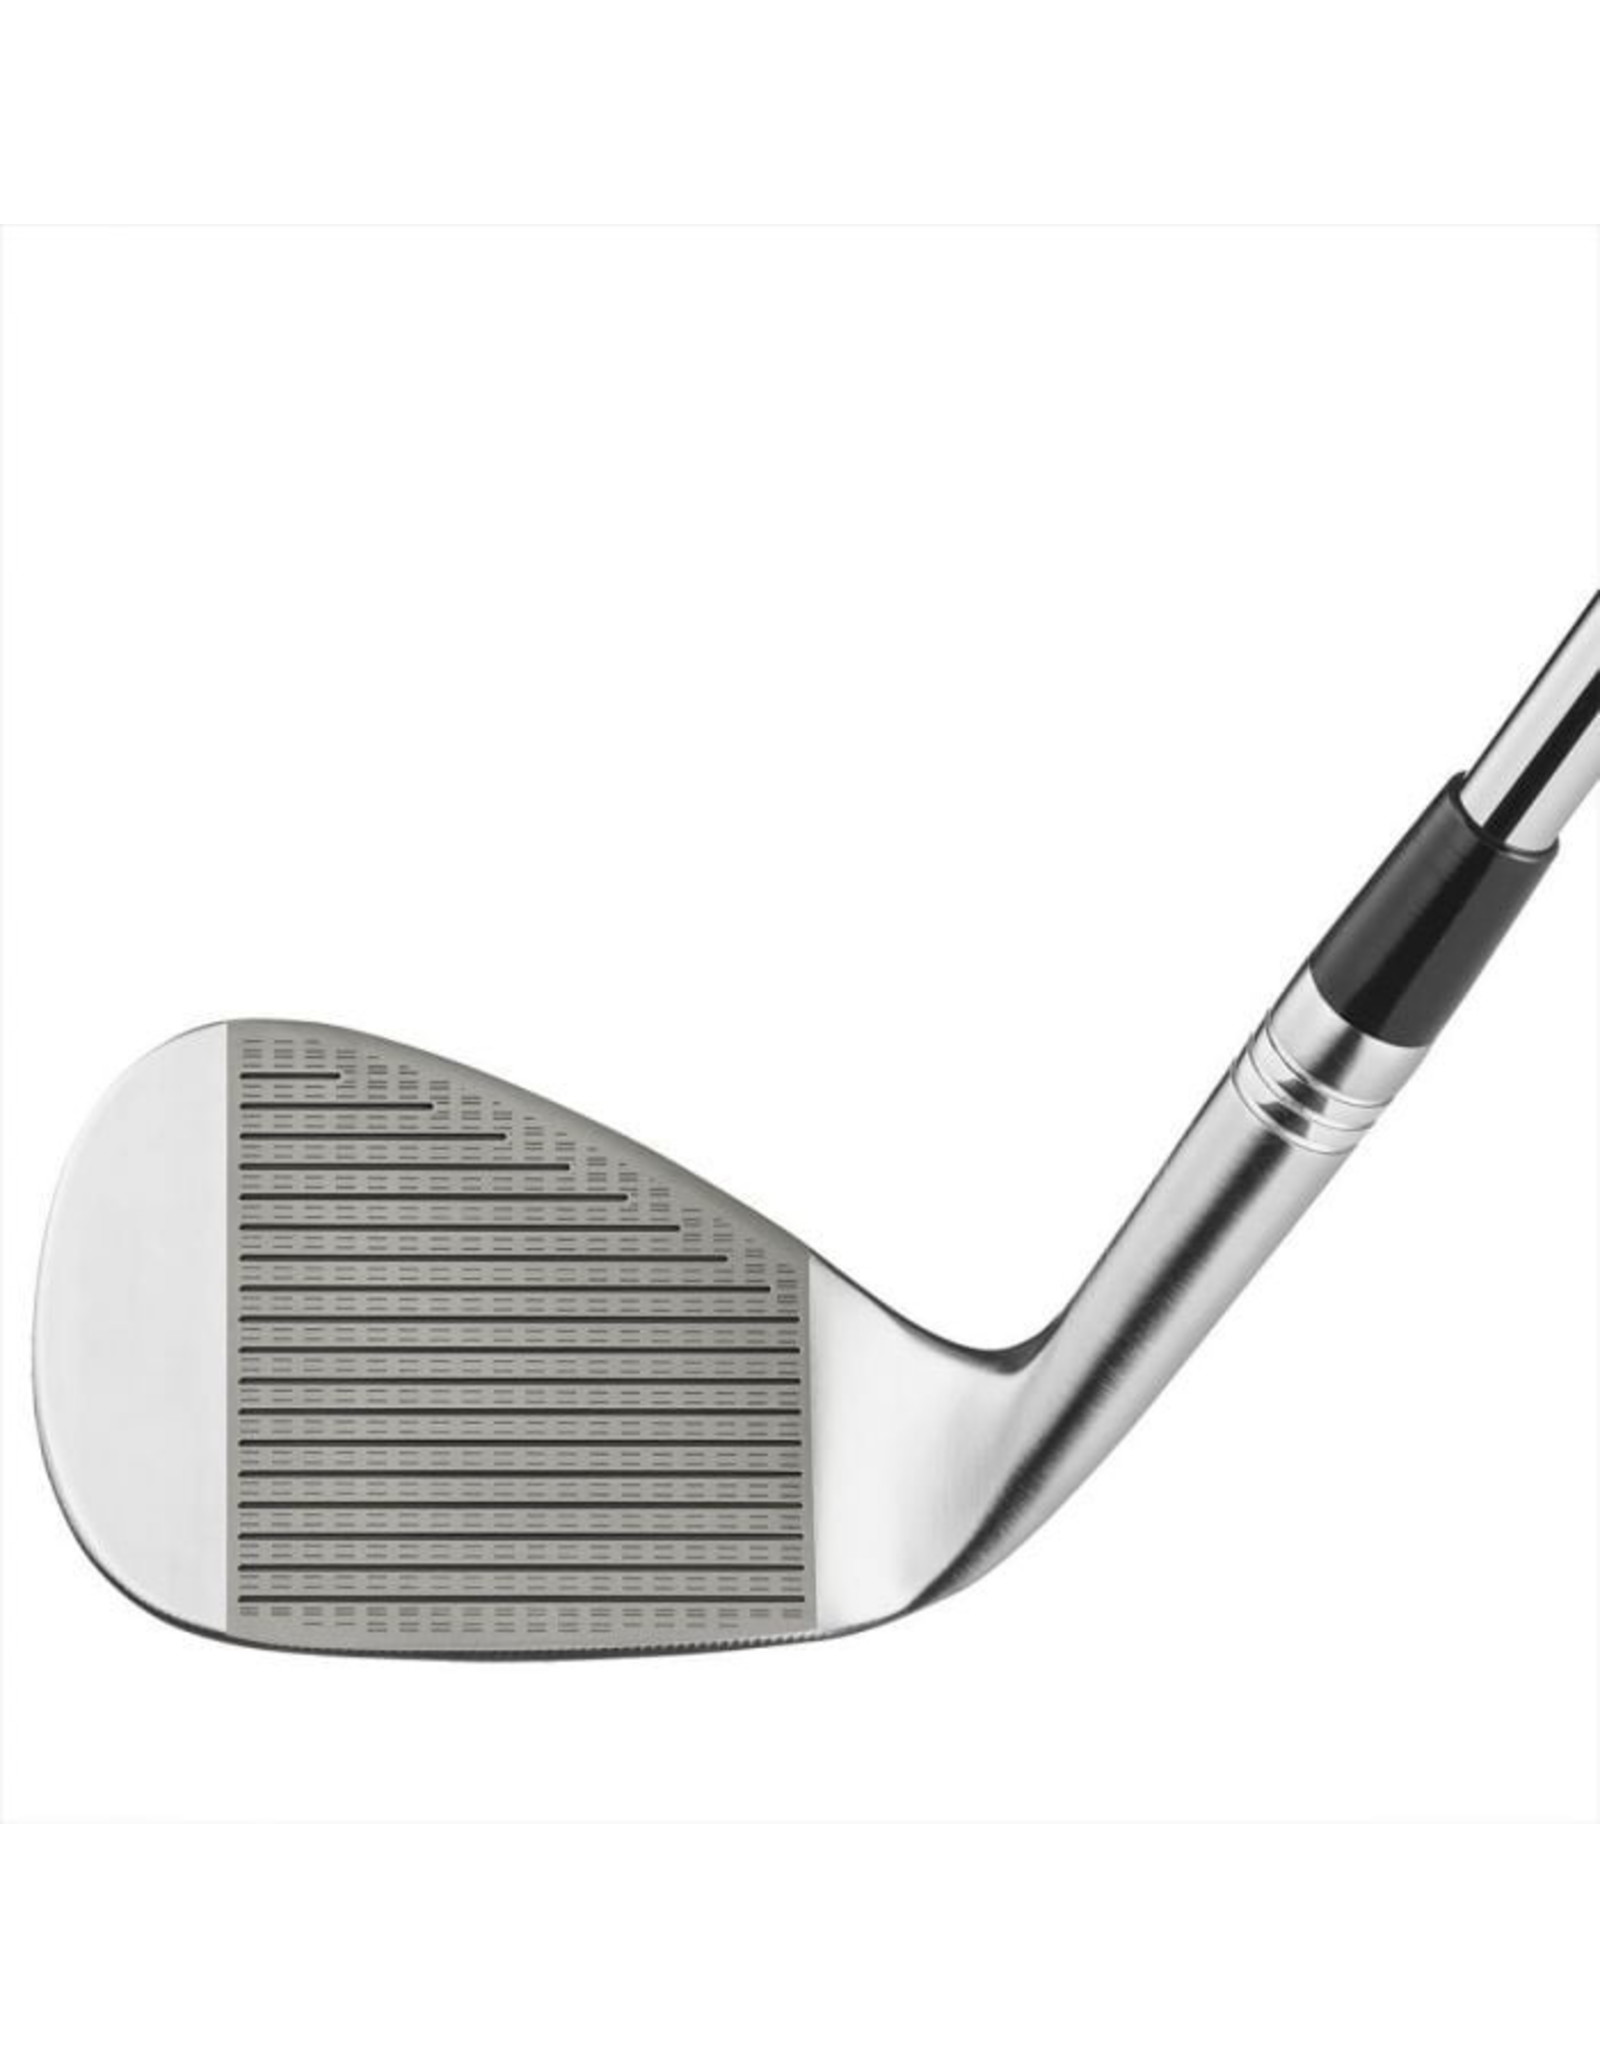 TAYLORMADE TAYLORMADE 2021 MG2 WEDGE - TW GRIND